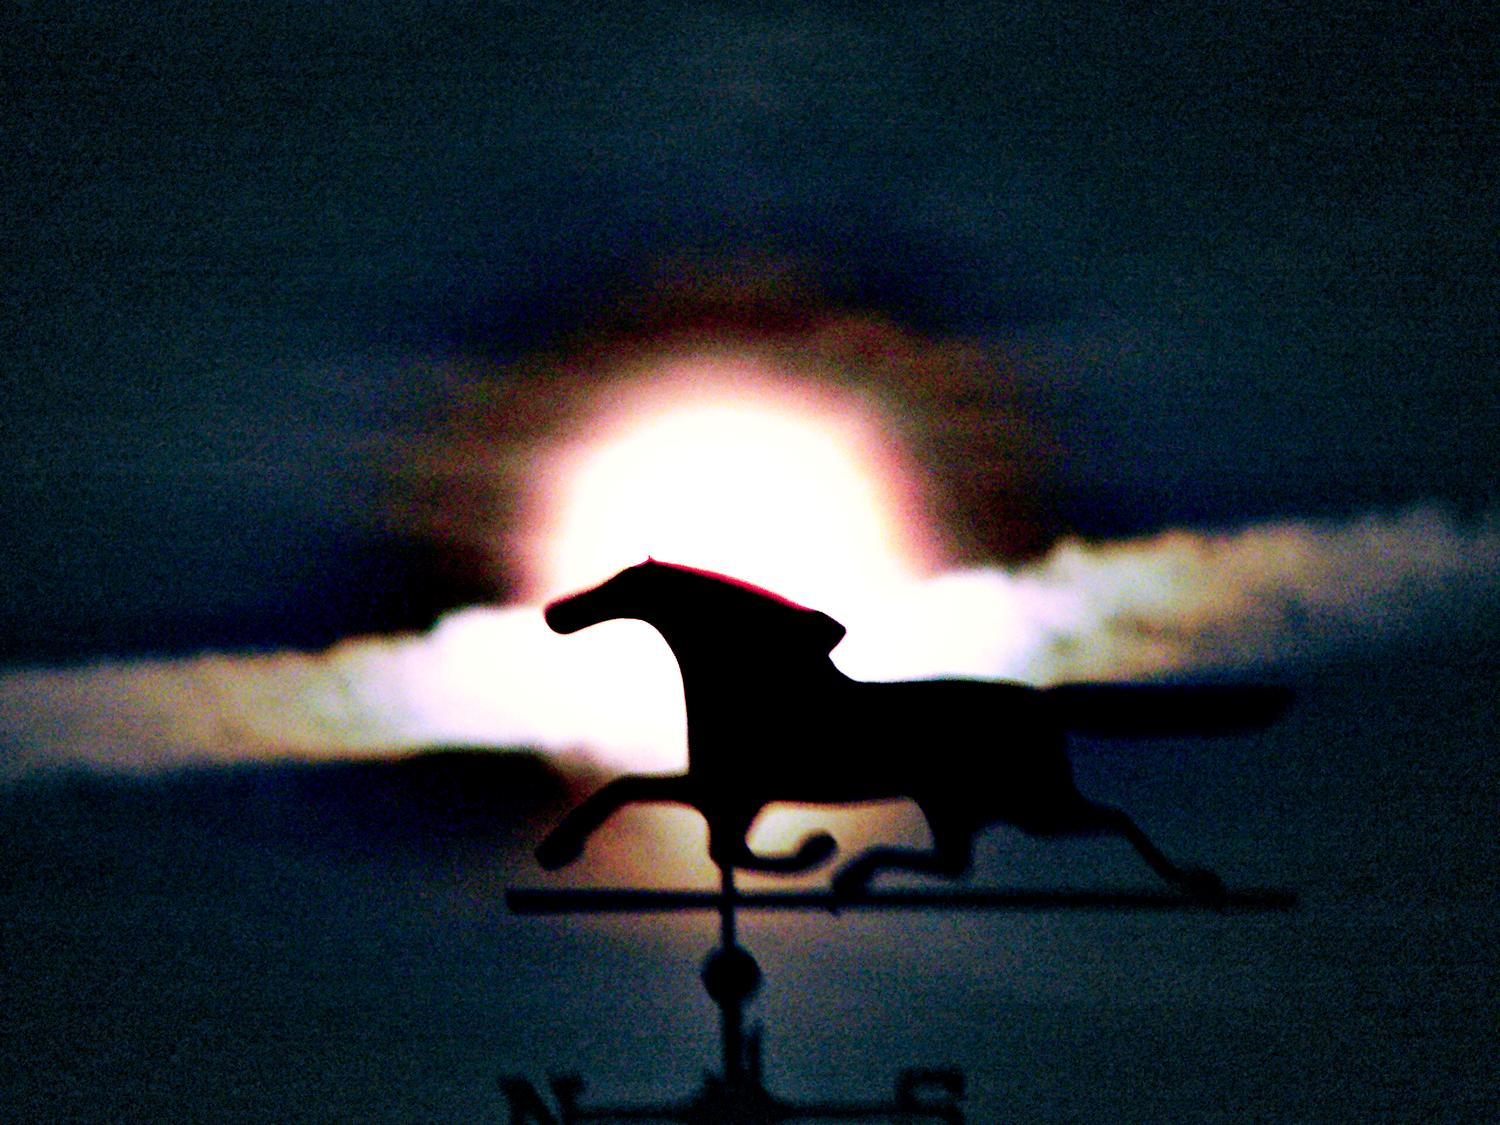 - Horse over my head - #6 - Techno-Impressionist Museum - Techno-Impressionism - art - beautiful - photo photography picture - by Tony Karp